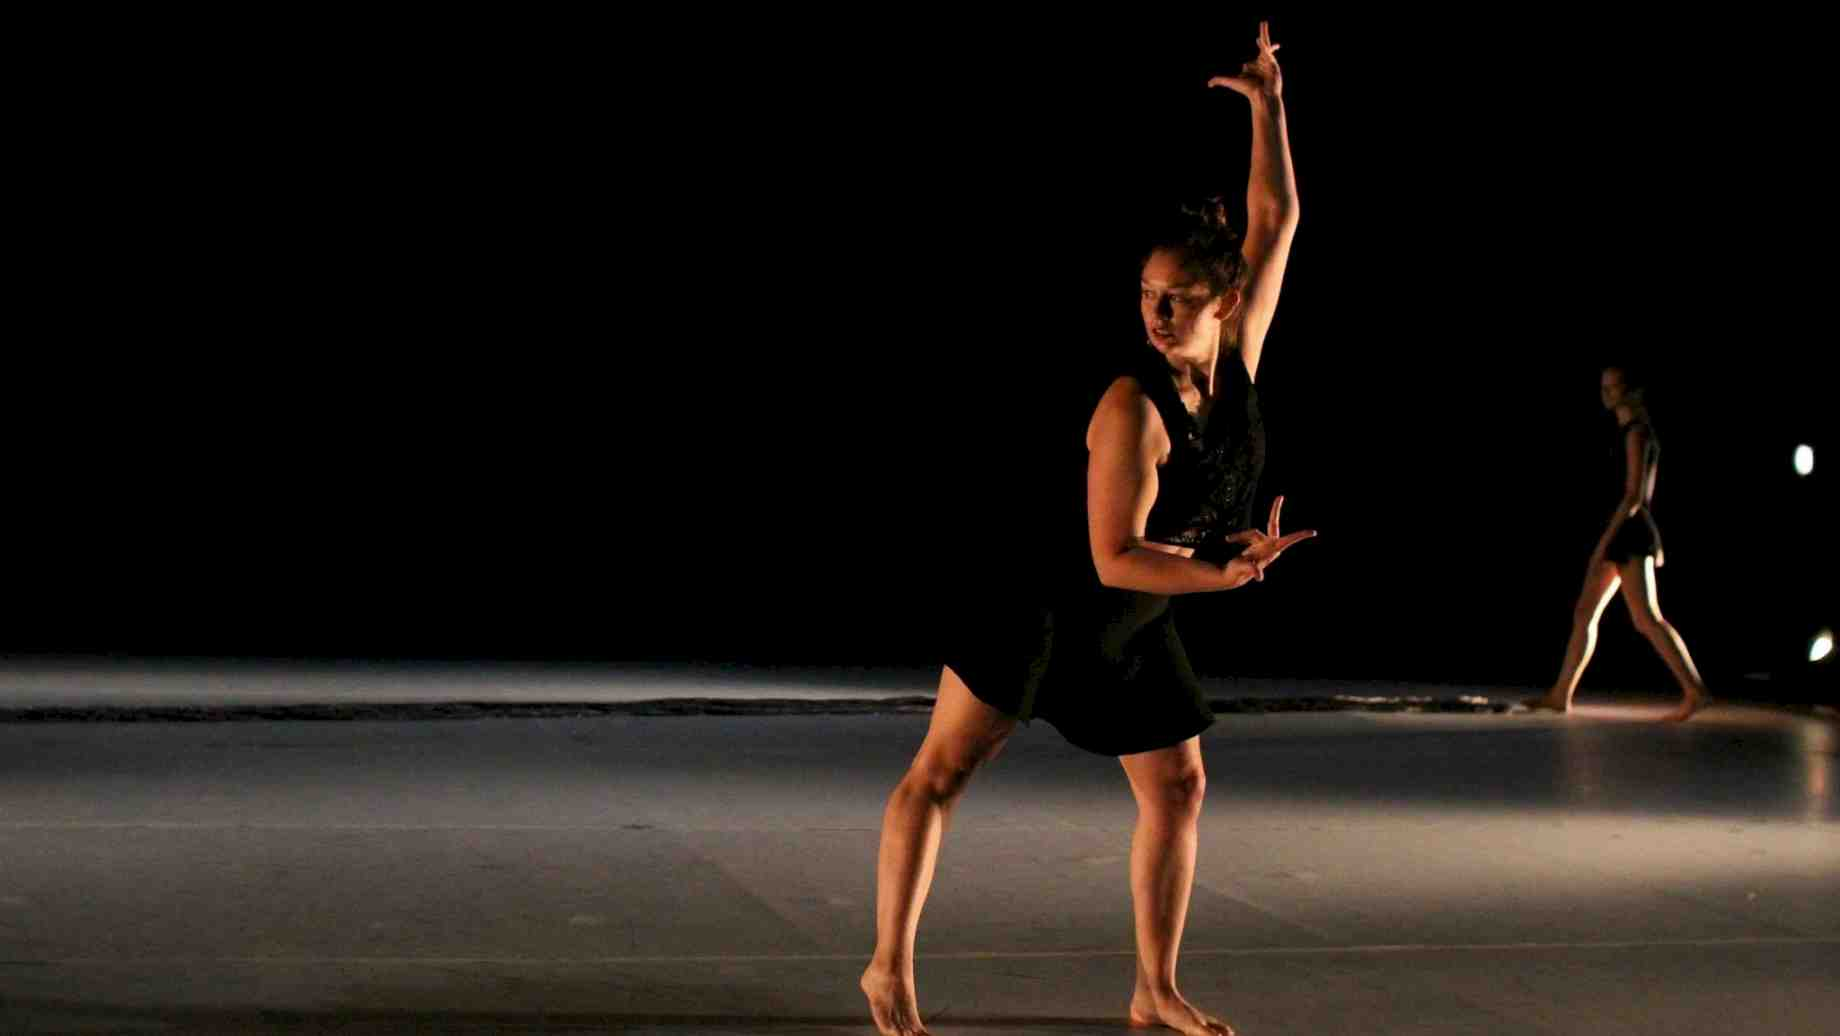 Nicole Assanti: BFA Dance (2015) & Center for World Arts/ Harn Choreographer-in-Residence, Summer 2015. (Photo, Jordan Albright)